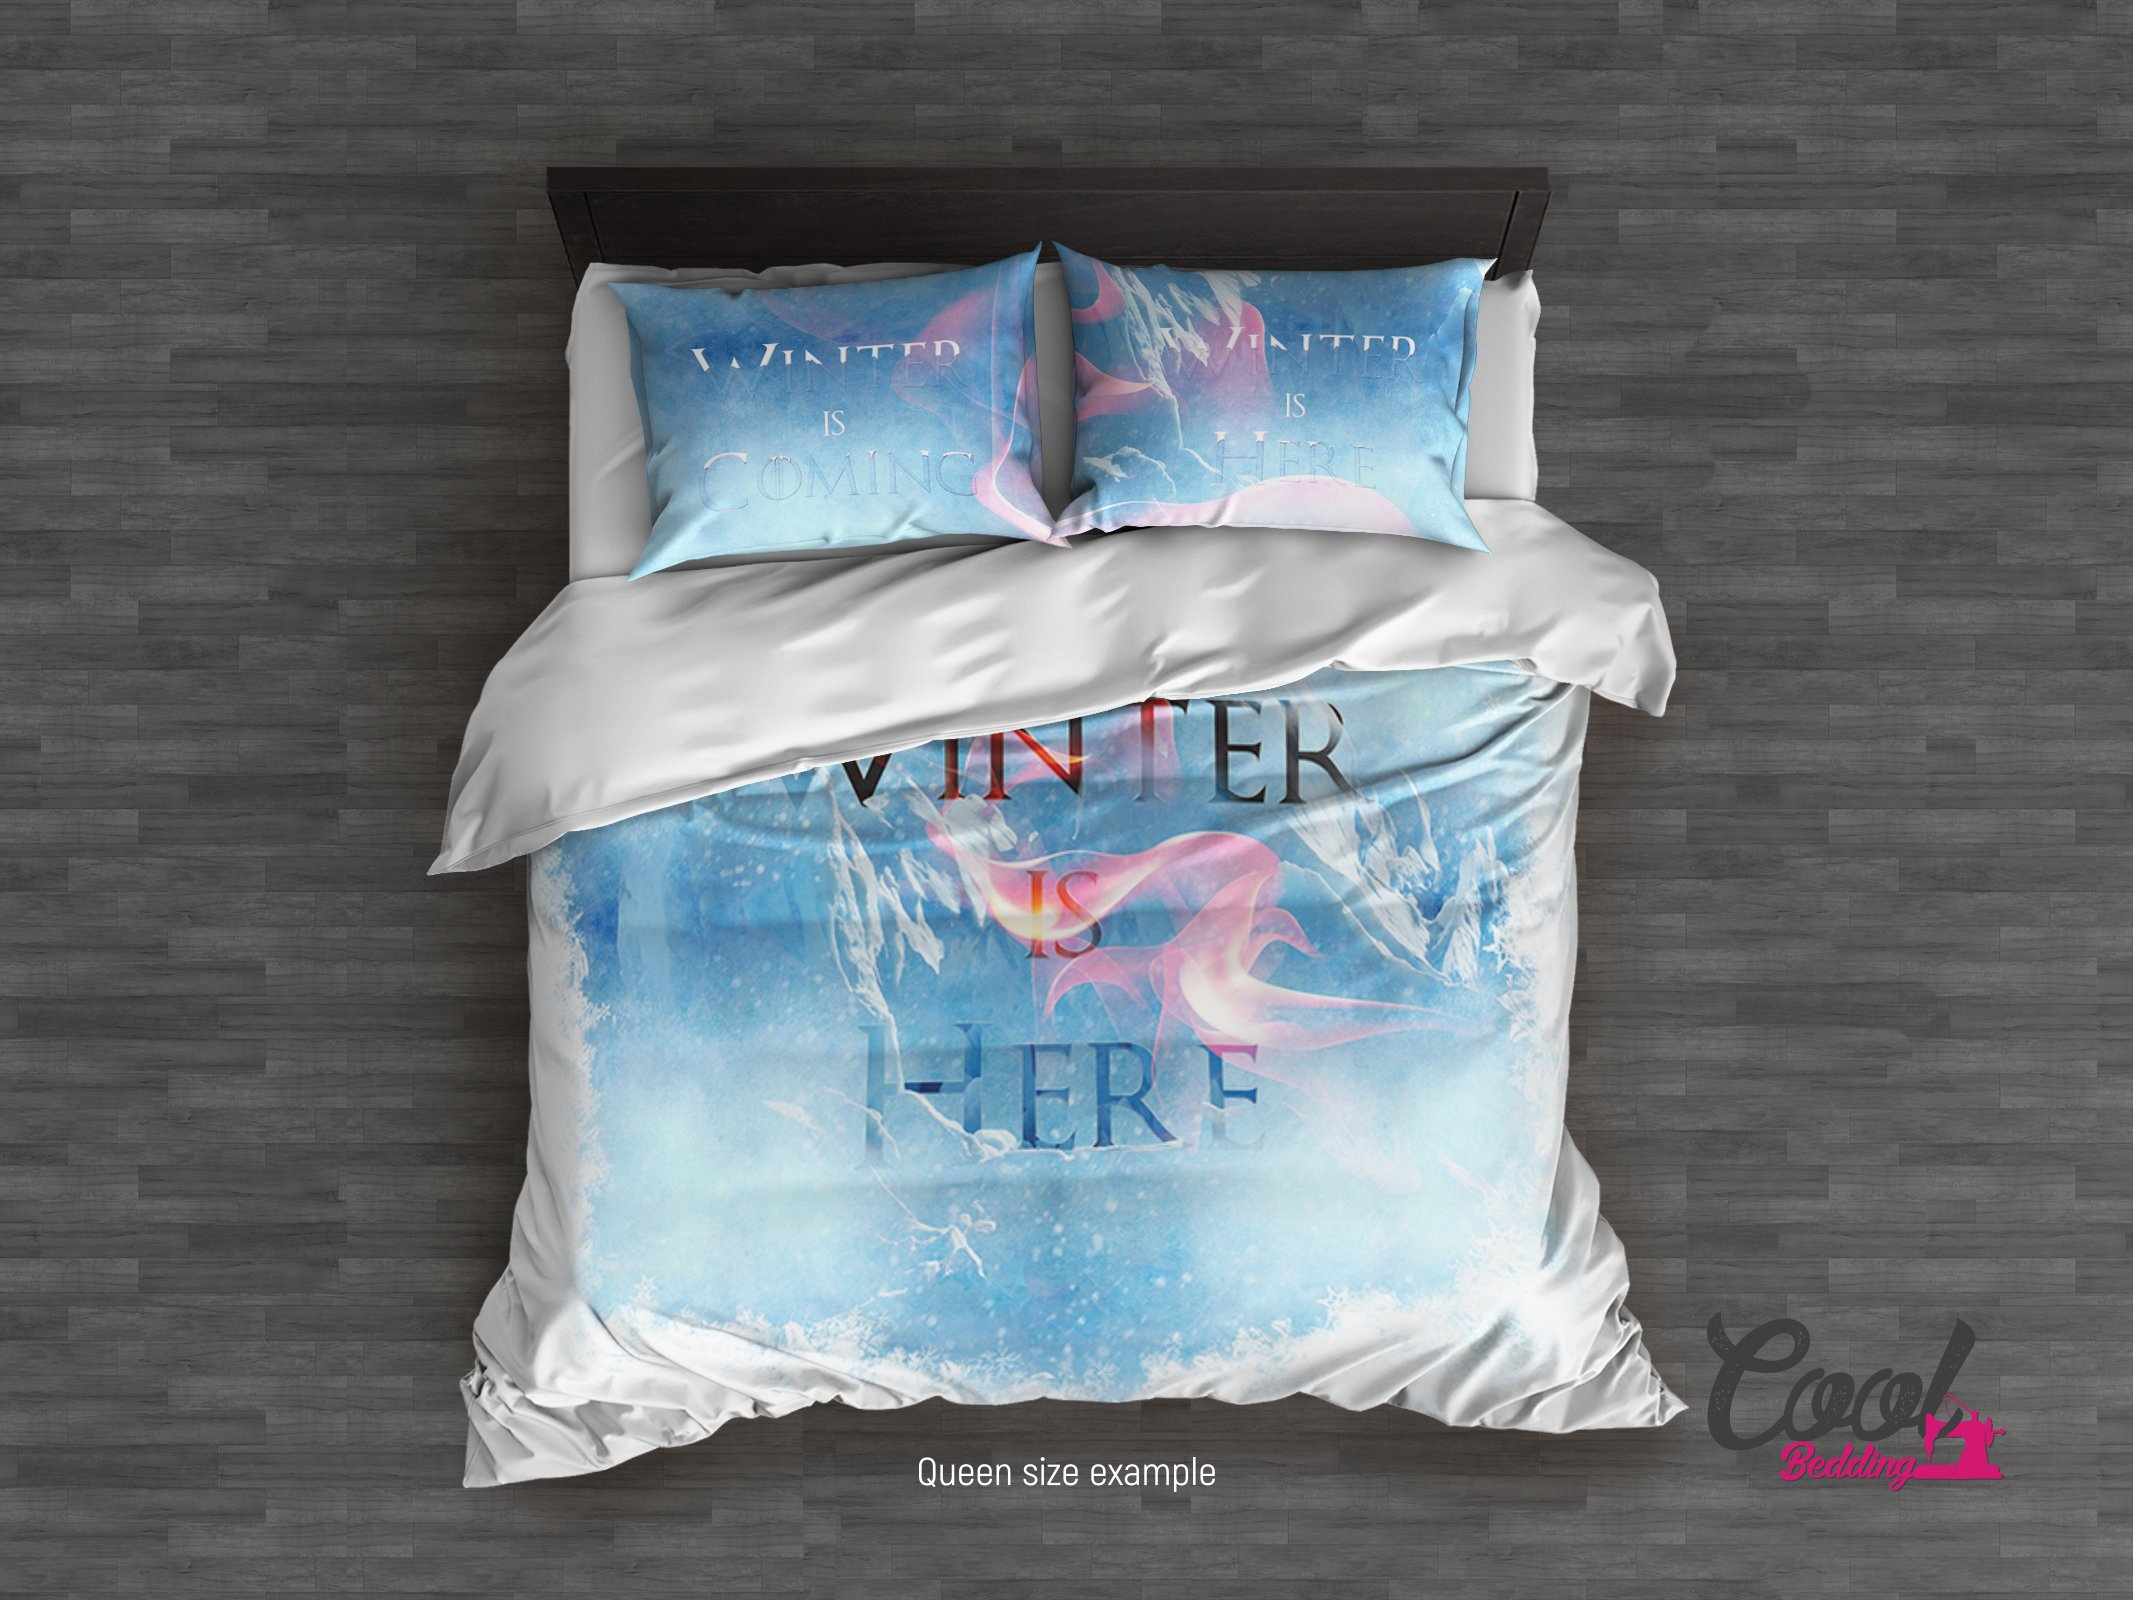 GAME OF THRONES inspired Bedding Set by Cool Bedding. Winter is Coming Duvet Cover. King Queen Full Twin Single size Duvet to Comforter Upgrade. (Queen 95''x87'')